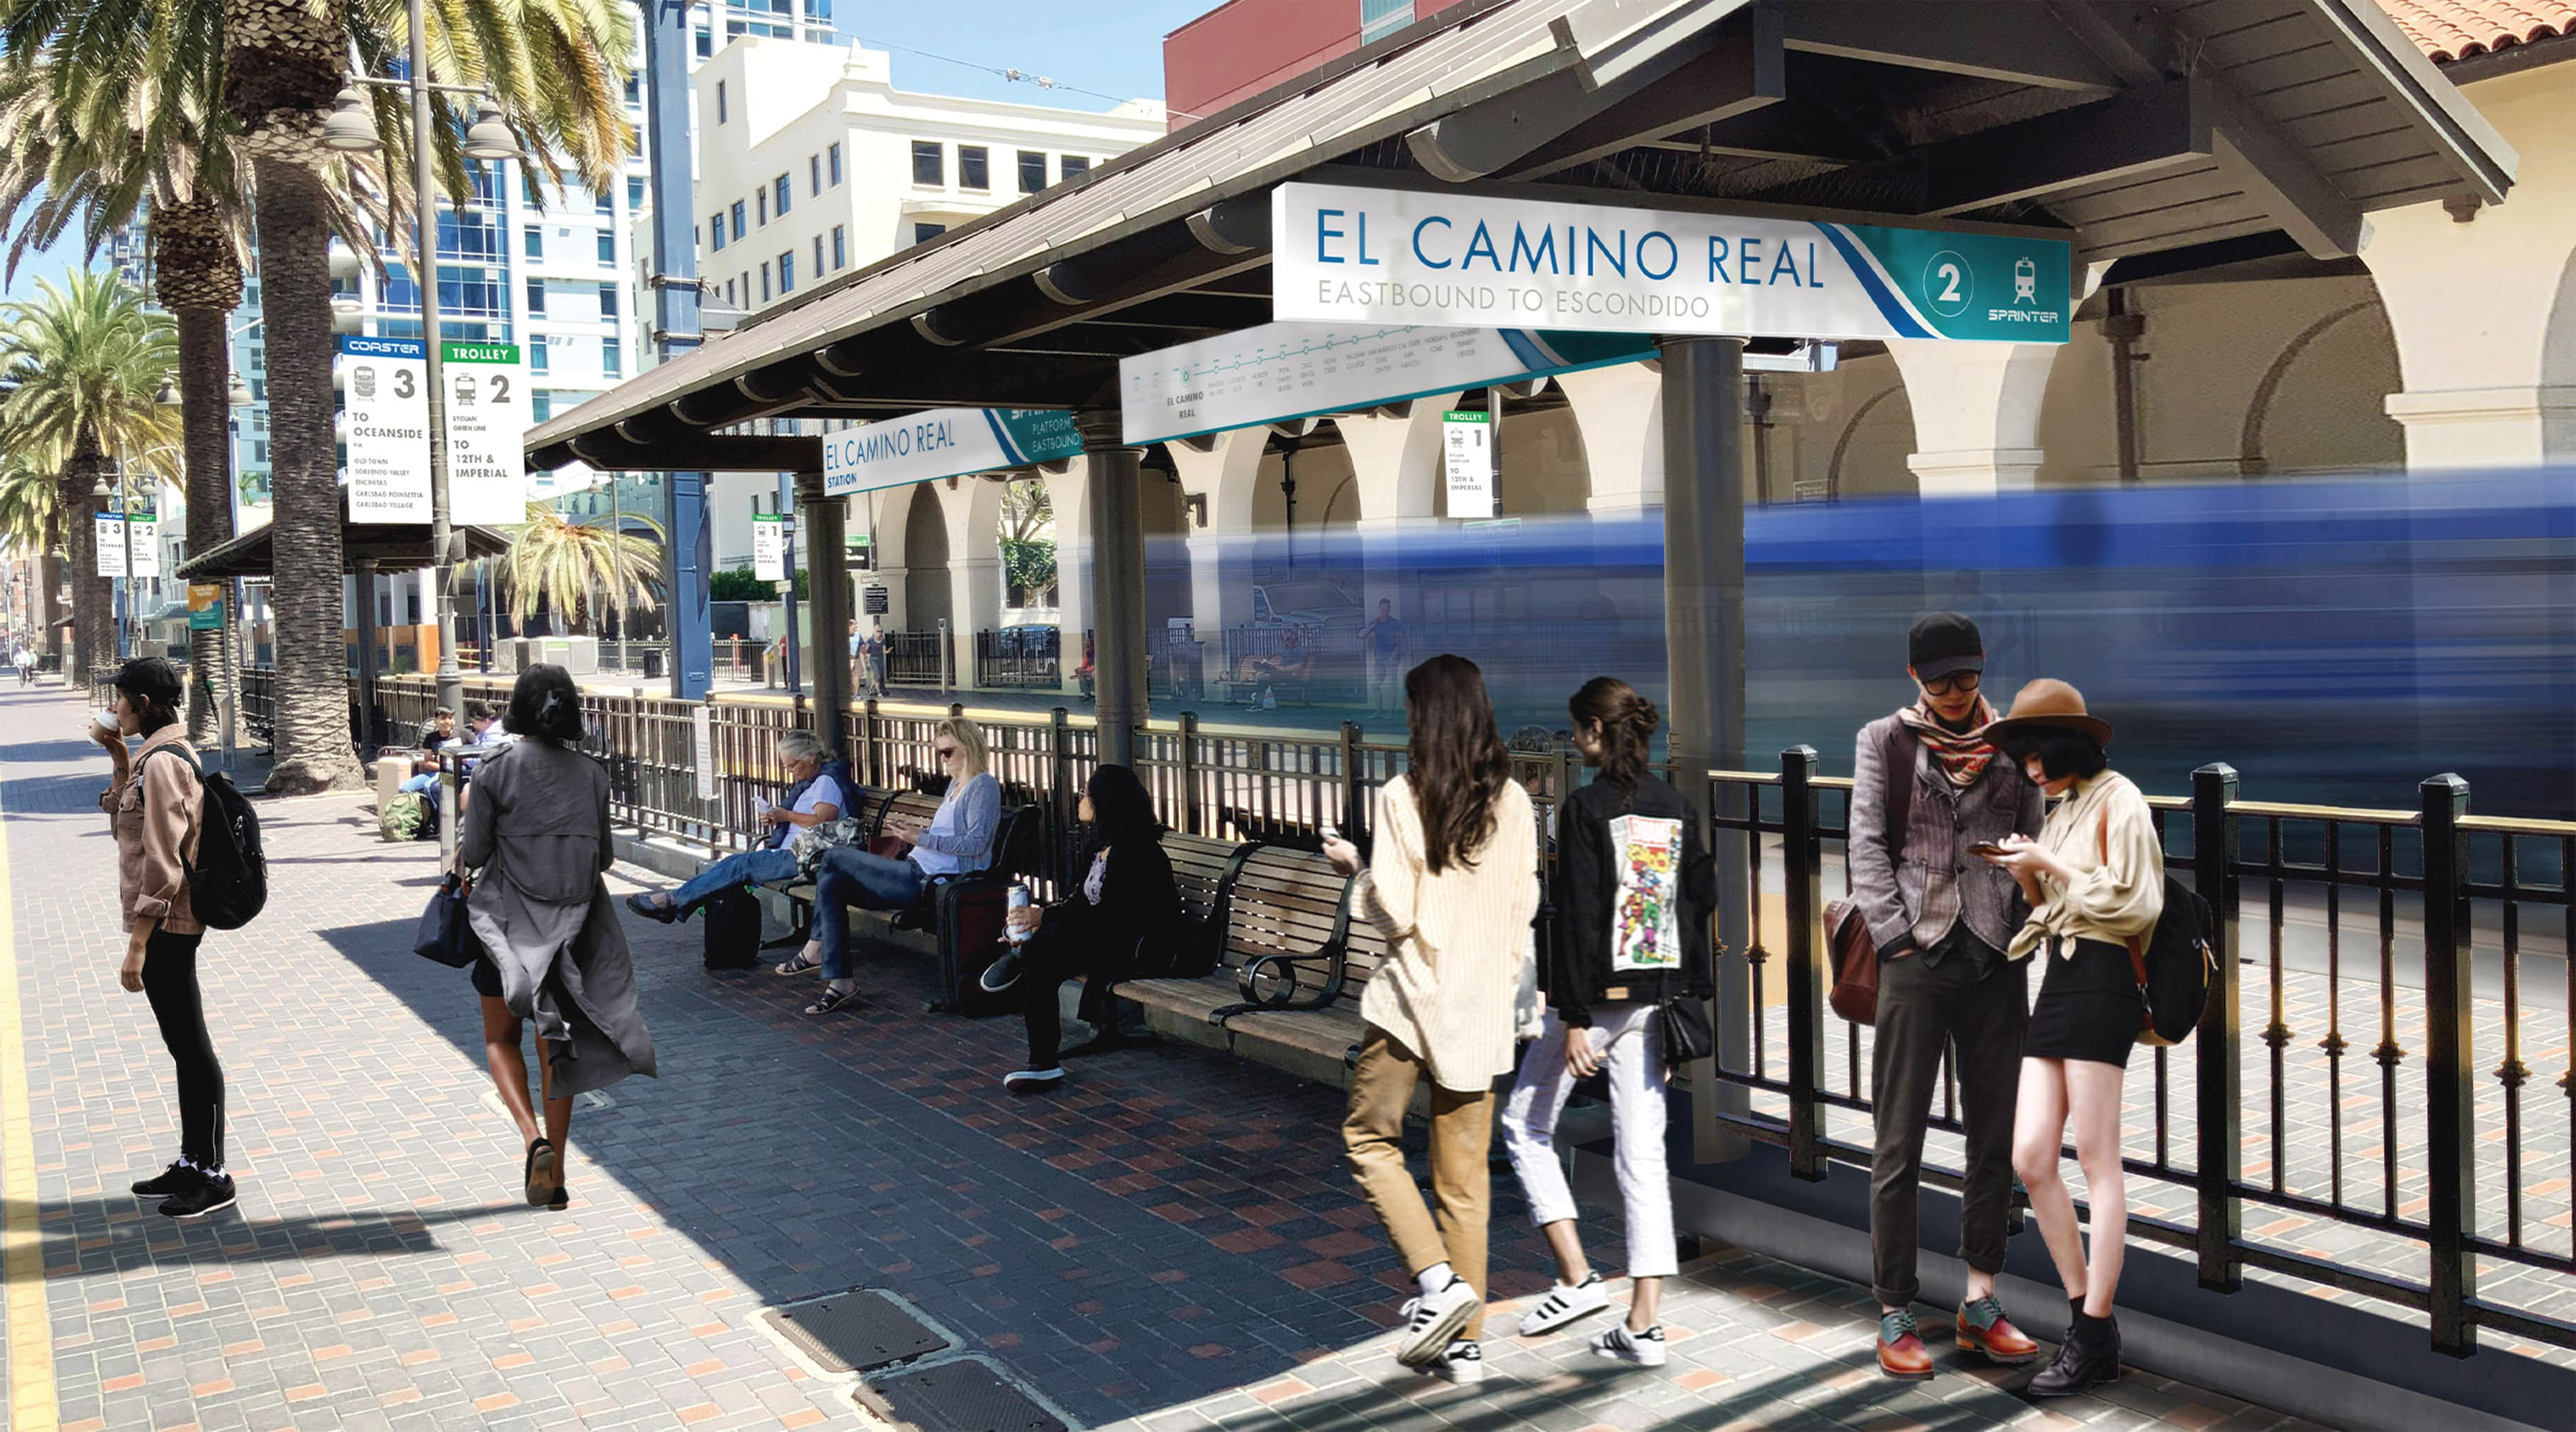 North County Transit District, the transit system in northern San Diego, California, worked with RSM Design to re-think what their transit system looks like. Transit identity design